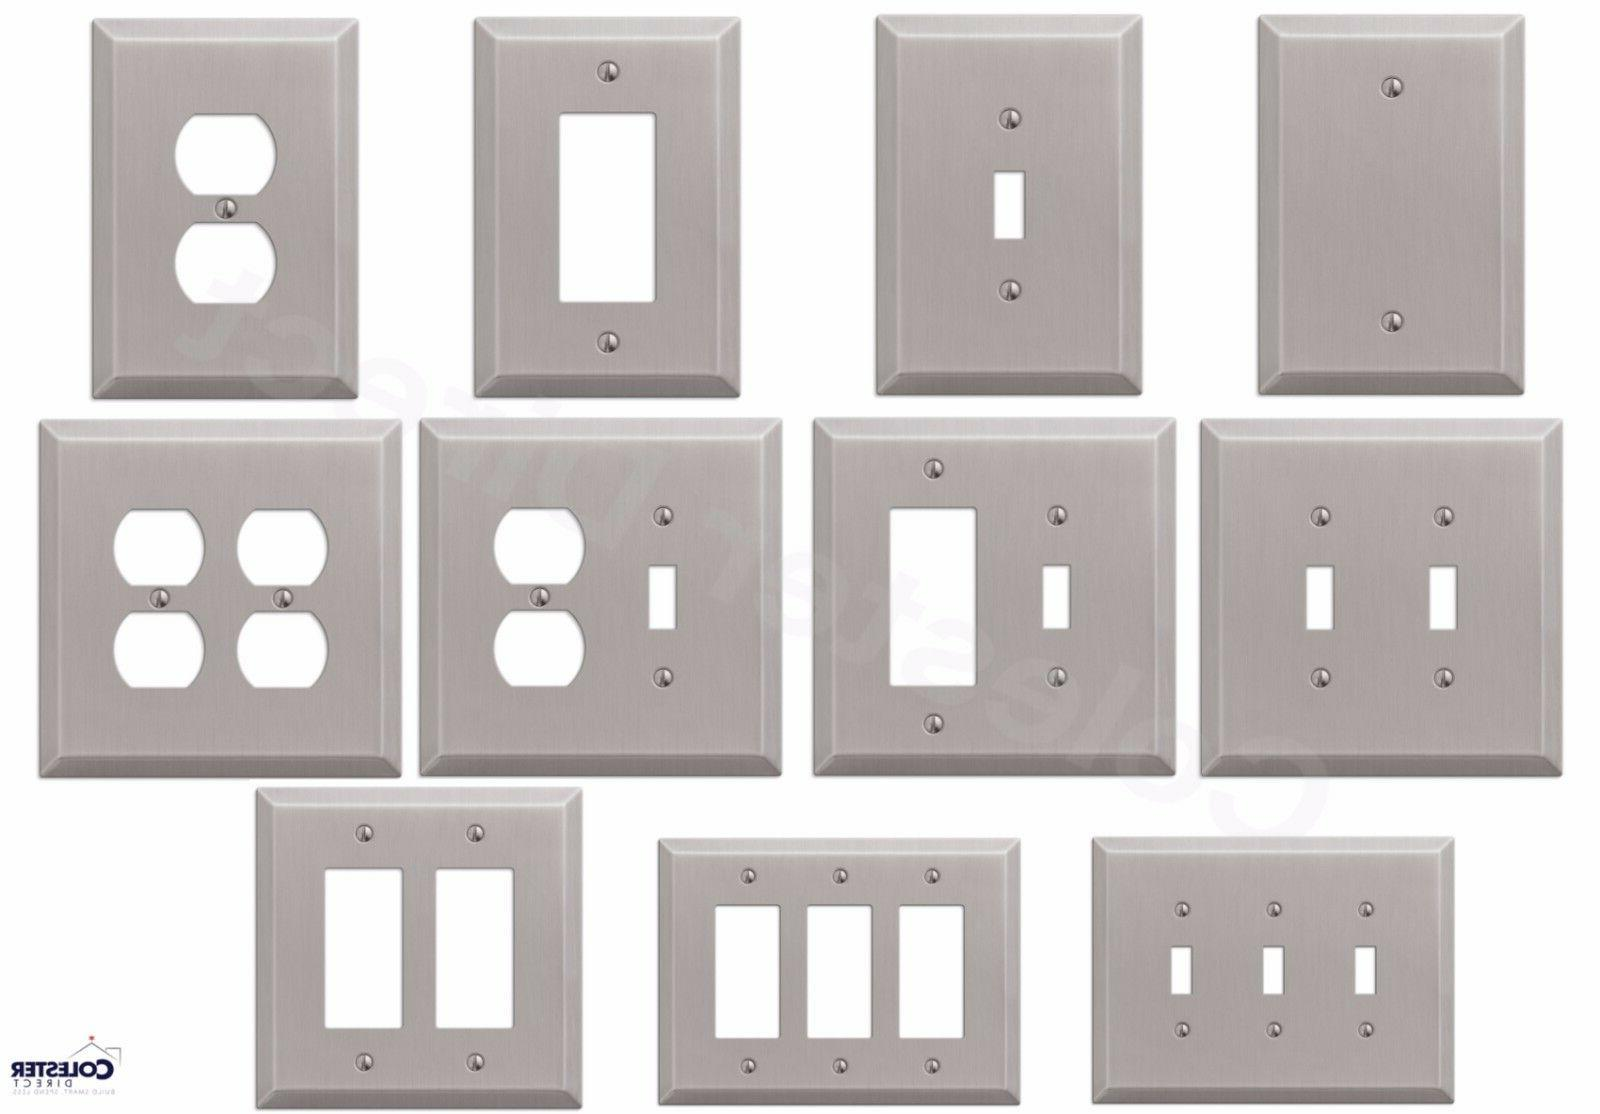 brushed satin nickel wall switch plate outlet